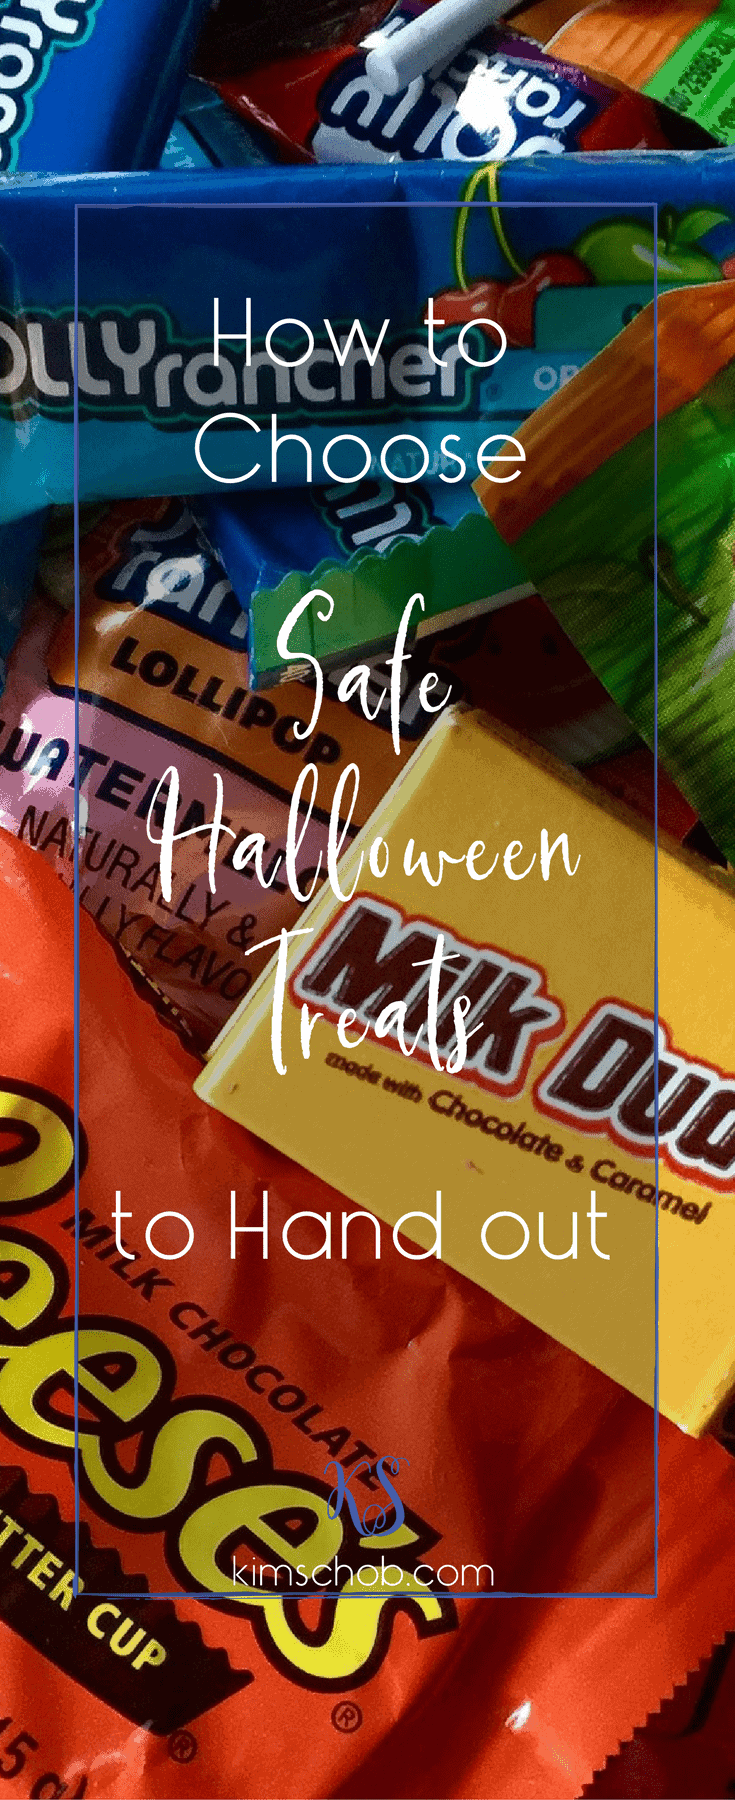 It\'s that time again: getting the candies and treats ready for trick or treaters. Here are tips to help you choose safe Halloween treats to hand out. #halloweentreats #halloween #halloweencandy